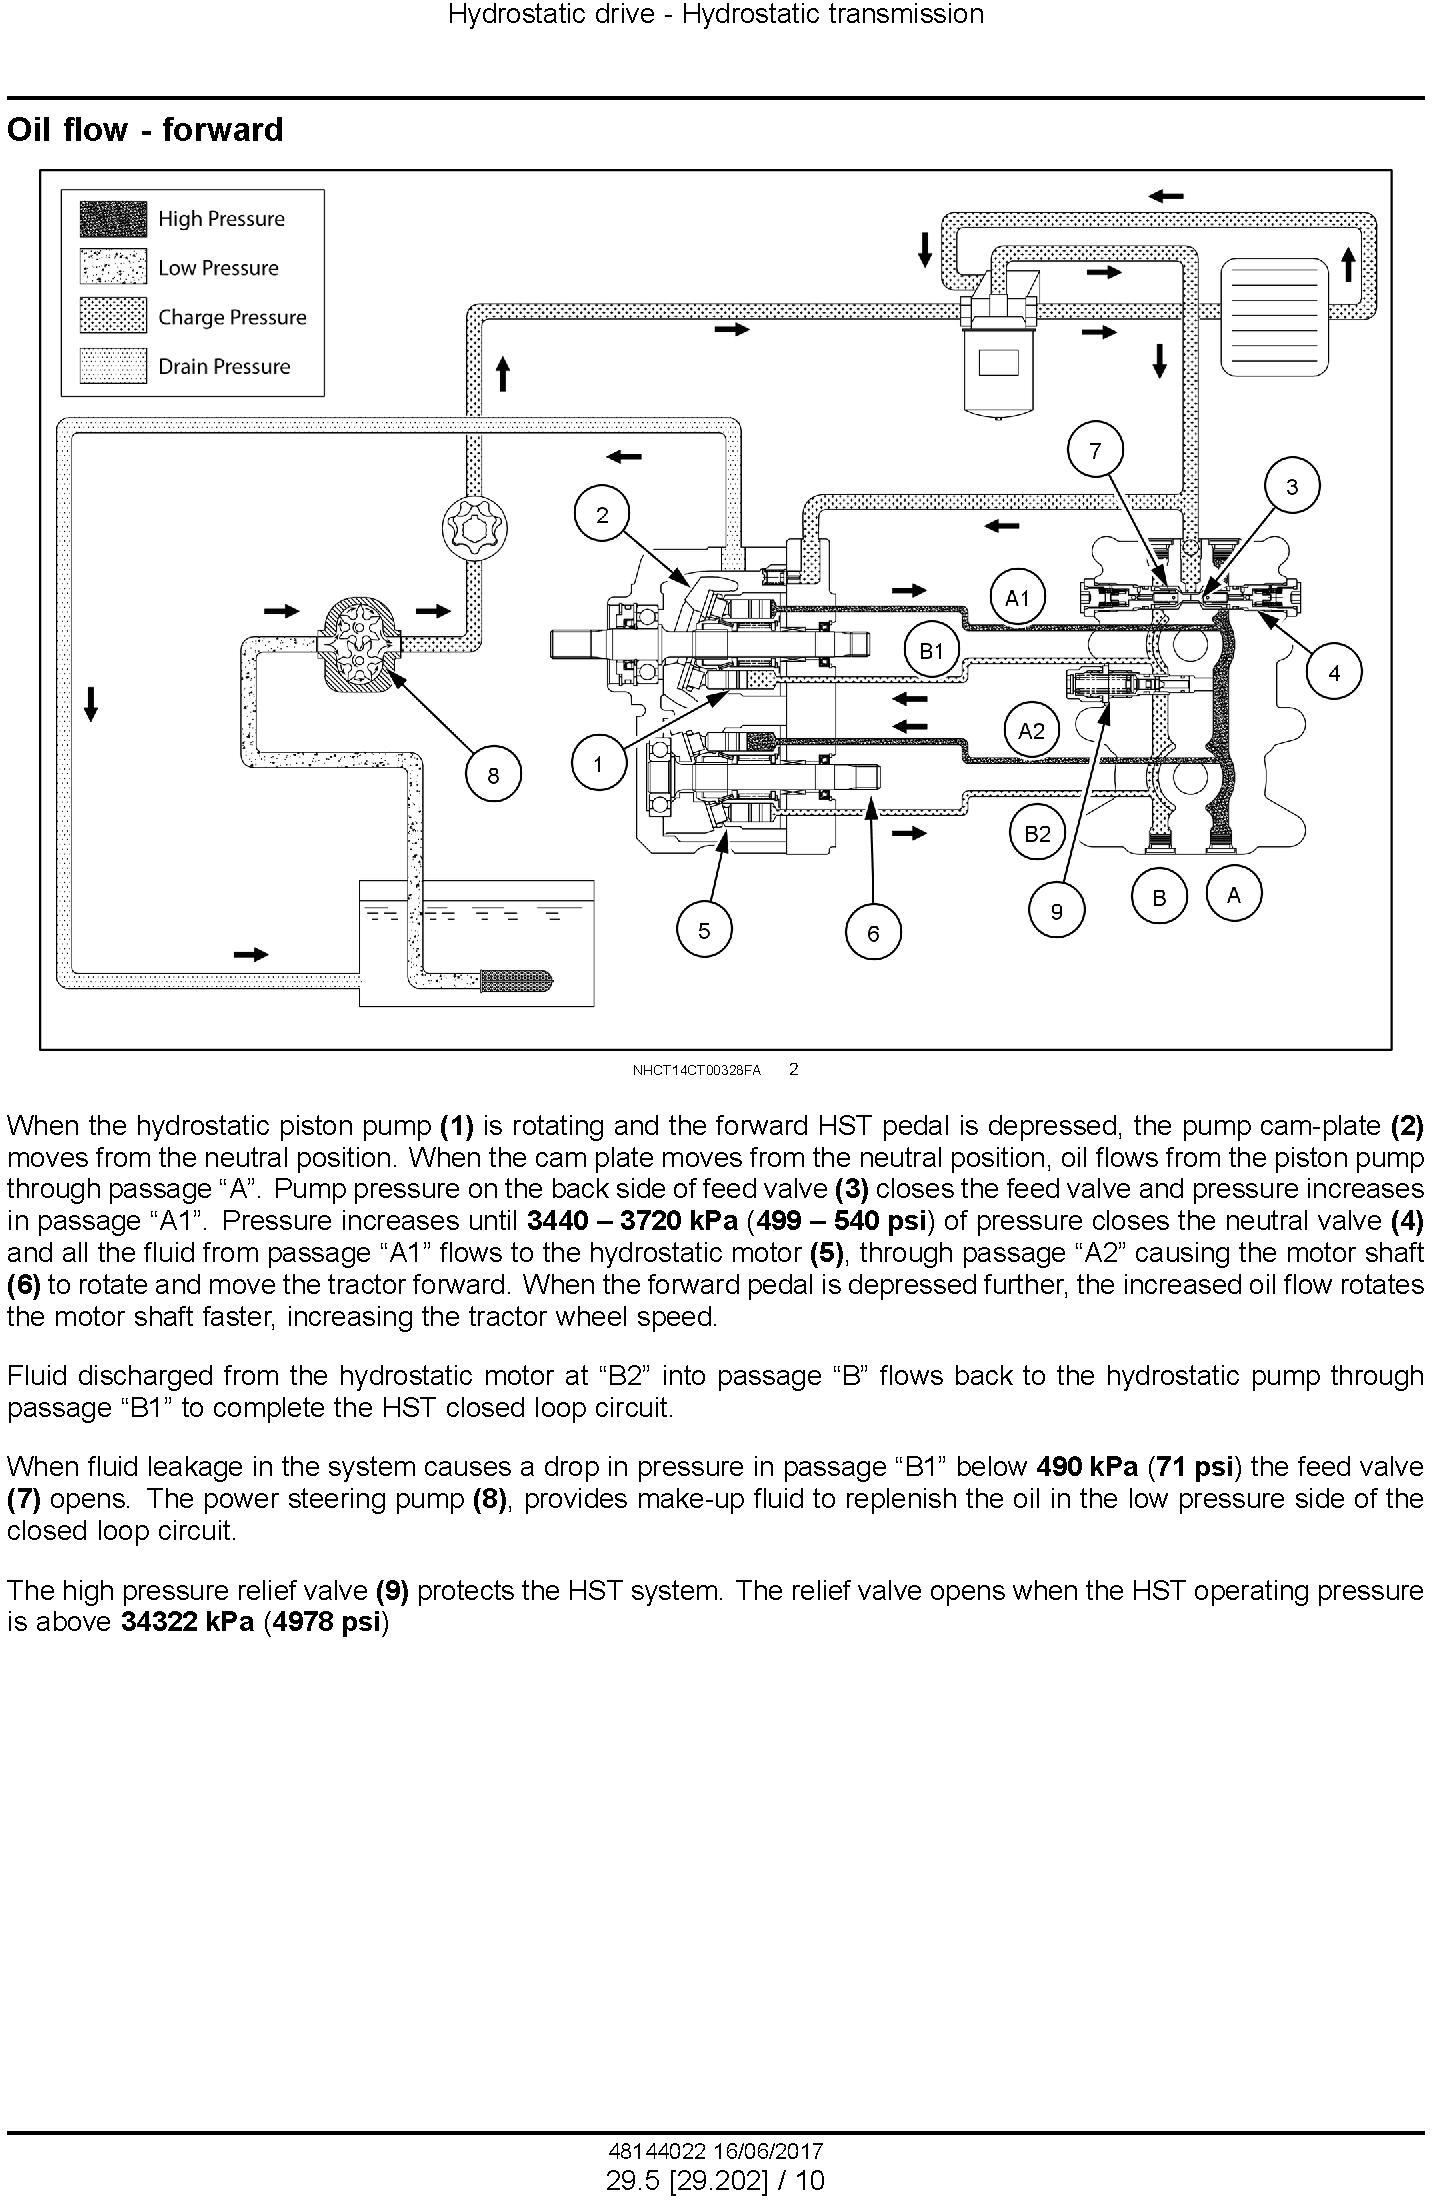 New Holland Boomer 35, Boomer 40 Tier 4B (final) Compact Tractor Service Manual (North America) - 3